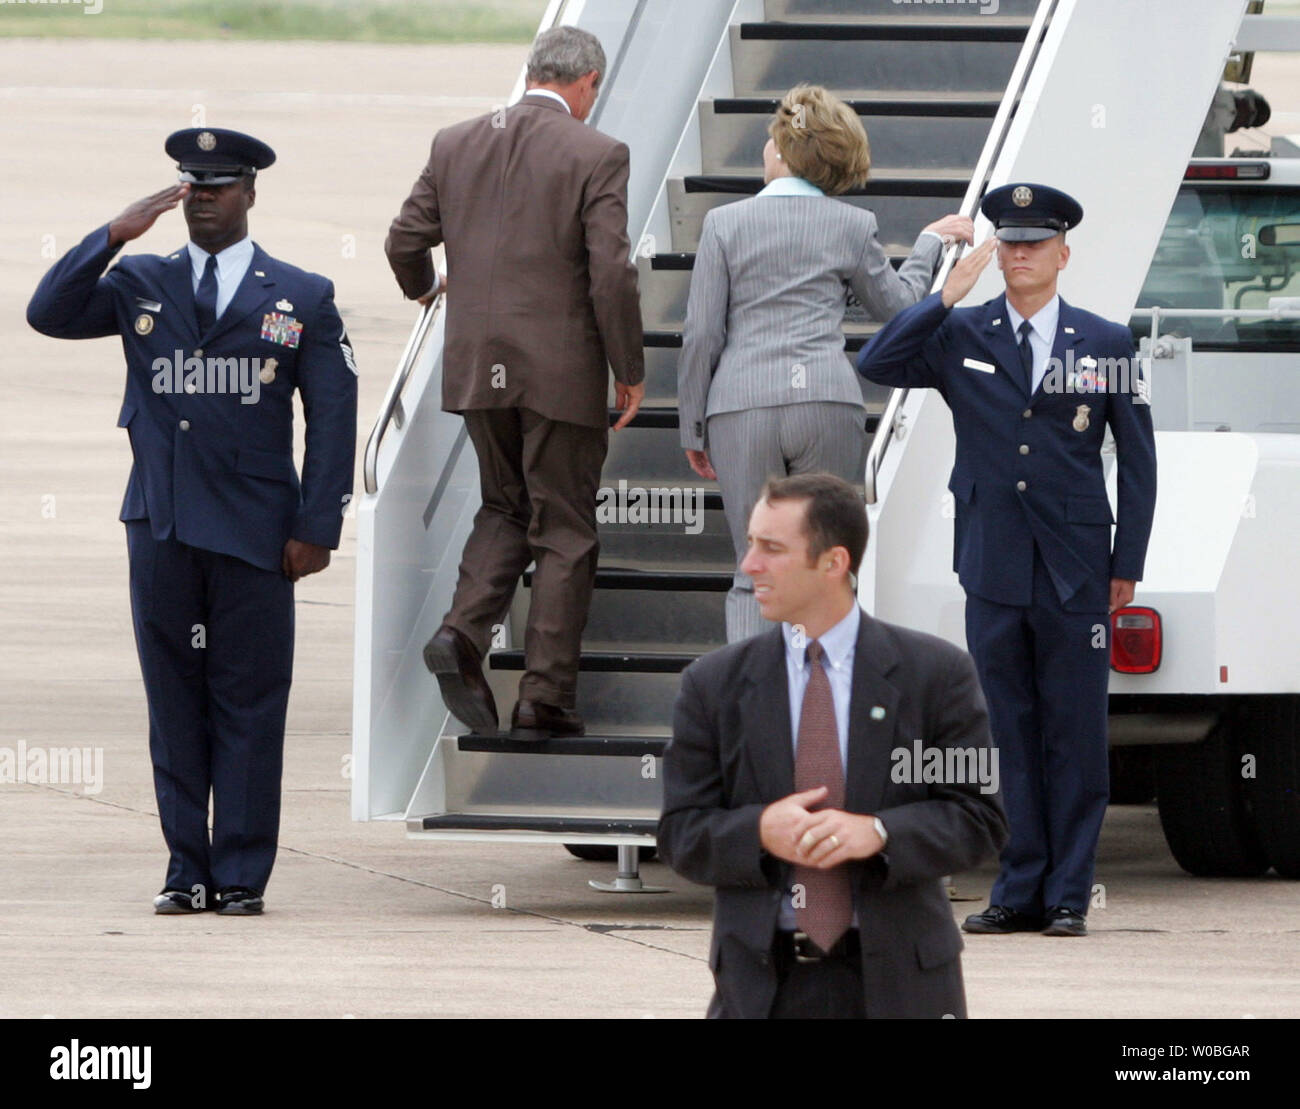 U.S. President George W. Bush and First Lady Laura Bush embark on Air Force One at the airport in Waco, Texas, en route to Arizona and California to discuss Medicare on Aug. 29, 2005.   (UPI Photo/Ruon Russek II) Stock Photo